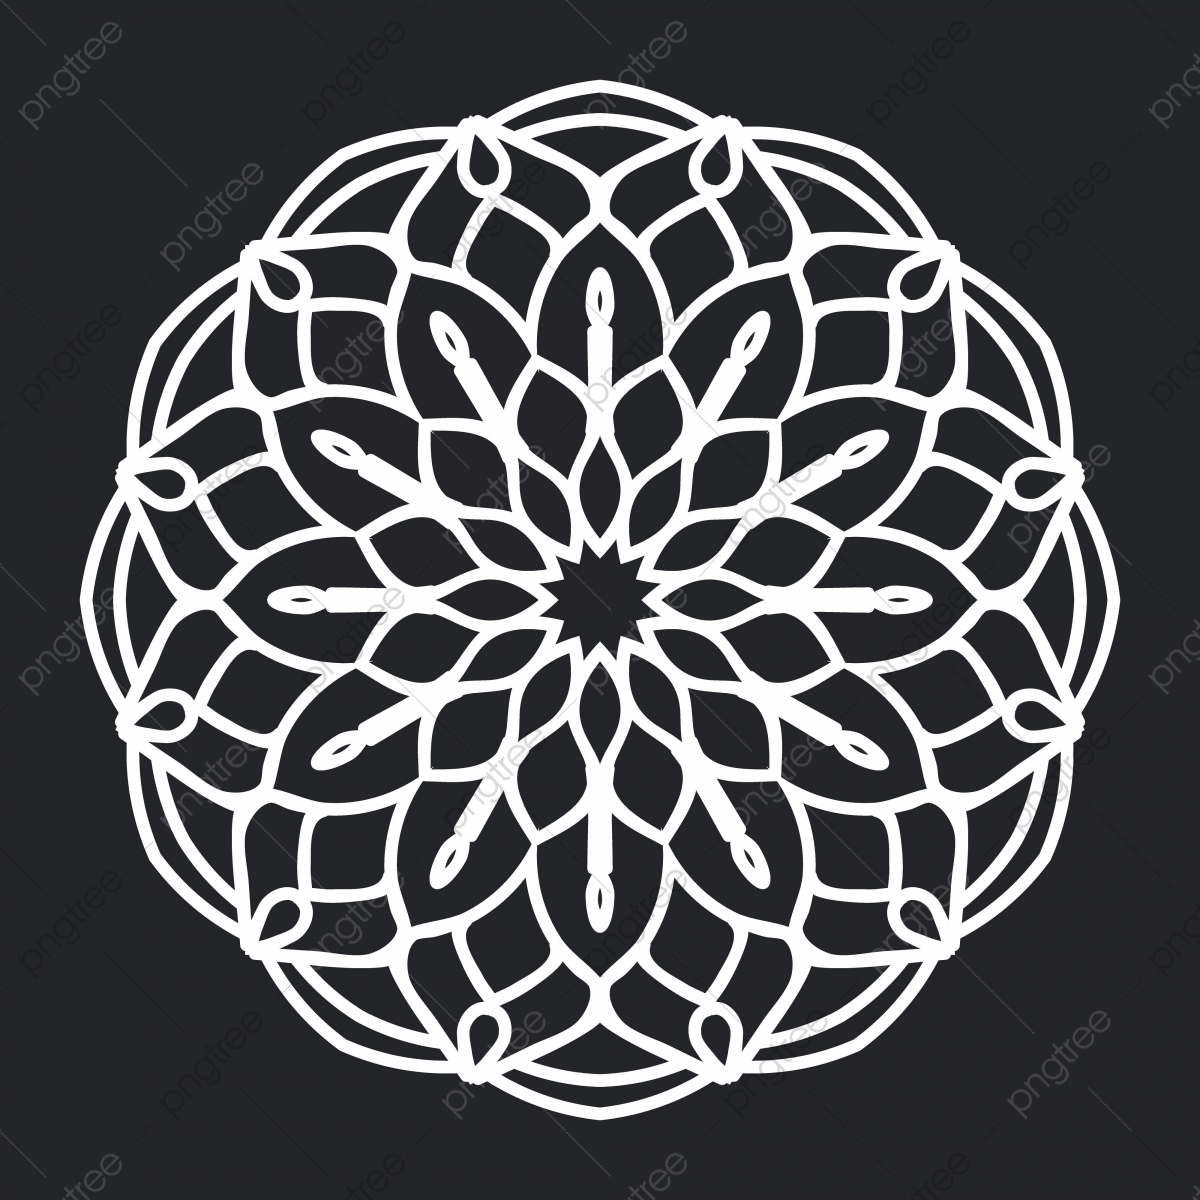 Mandala Floral Pattern Black And White Silhouette Ornament Element